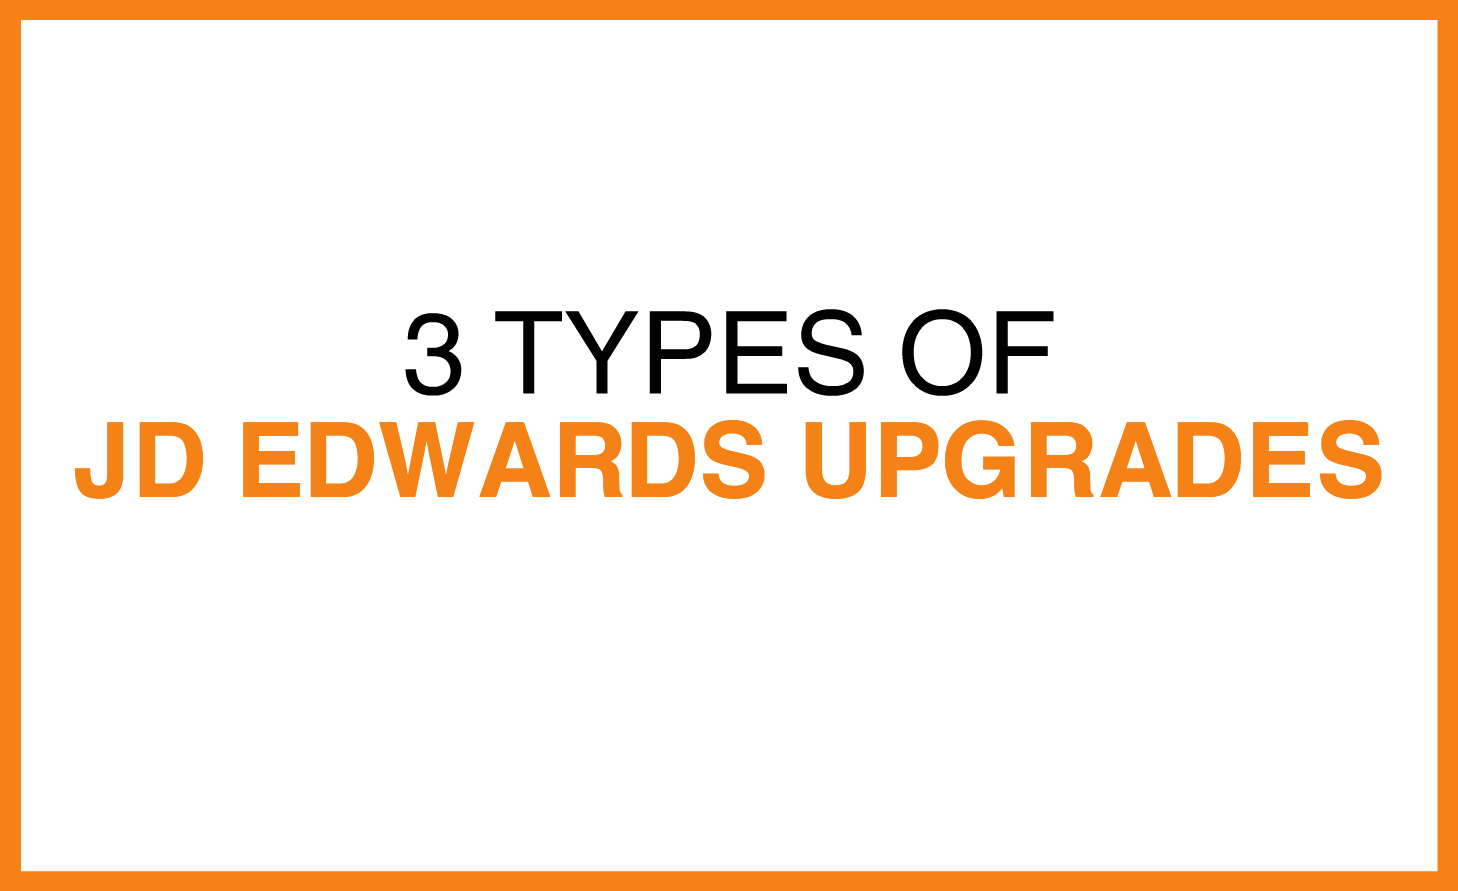 3_types_of_jde_upgrades.png